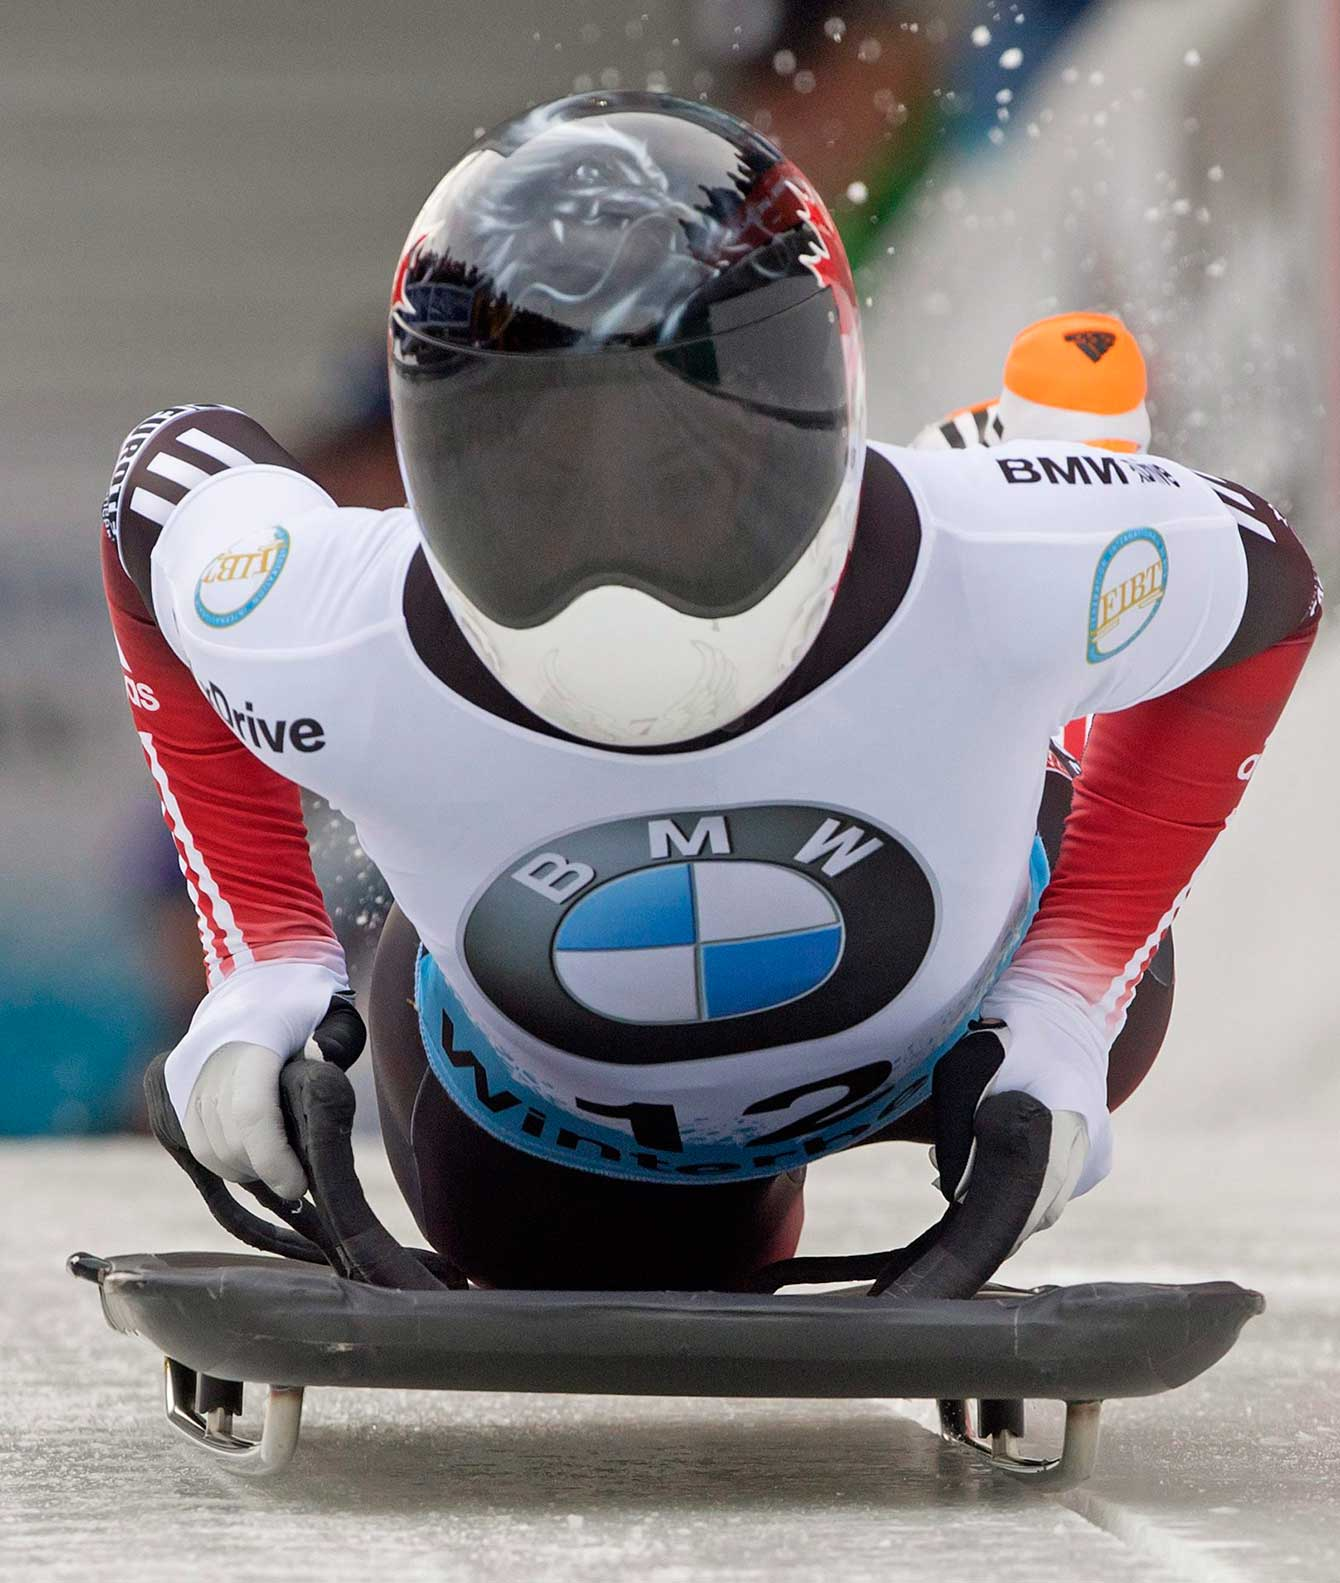 Jane Channell of Canada starts during her third run in the women's skeleton race at the Bob and Skeleton World Championships in Winterberg, Germany, Saturday, March 7, 2015. (AP Photo/Jens Meyer)